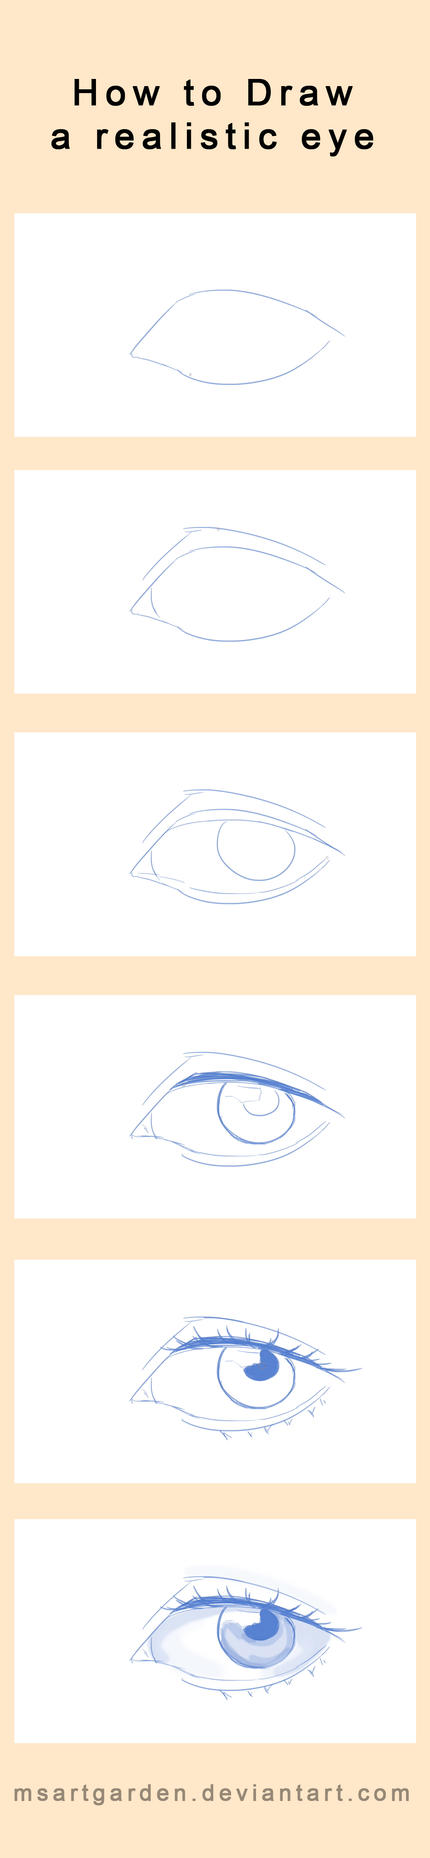 How to draw a realistic eye by MsArtGarden